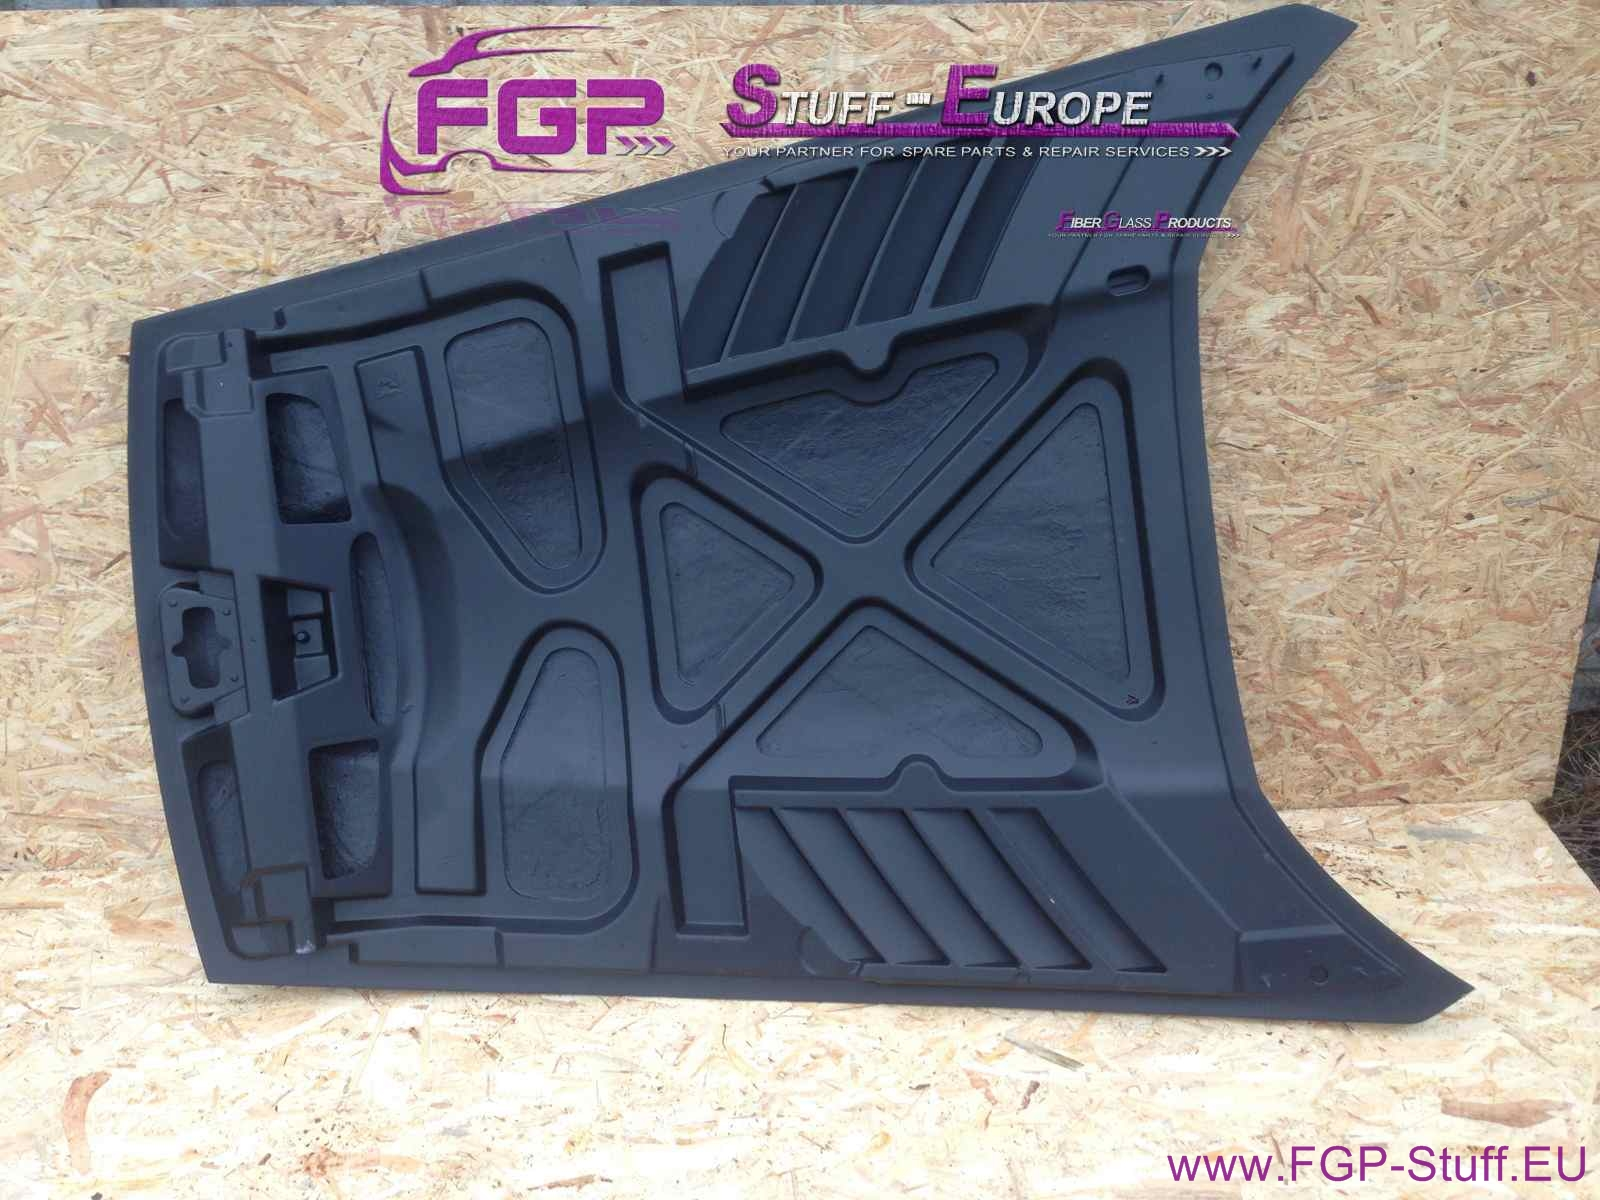 Viper SRT 10 Front Hood for Dodge Viper